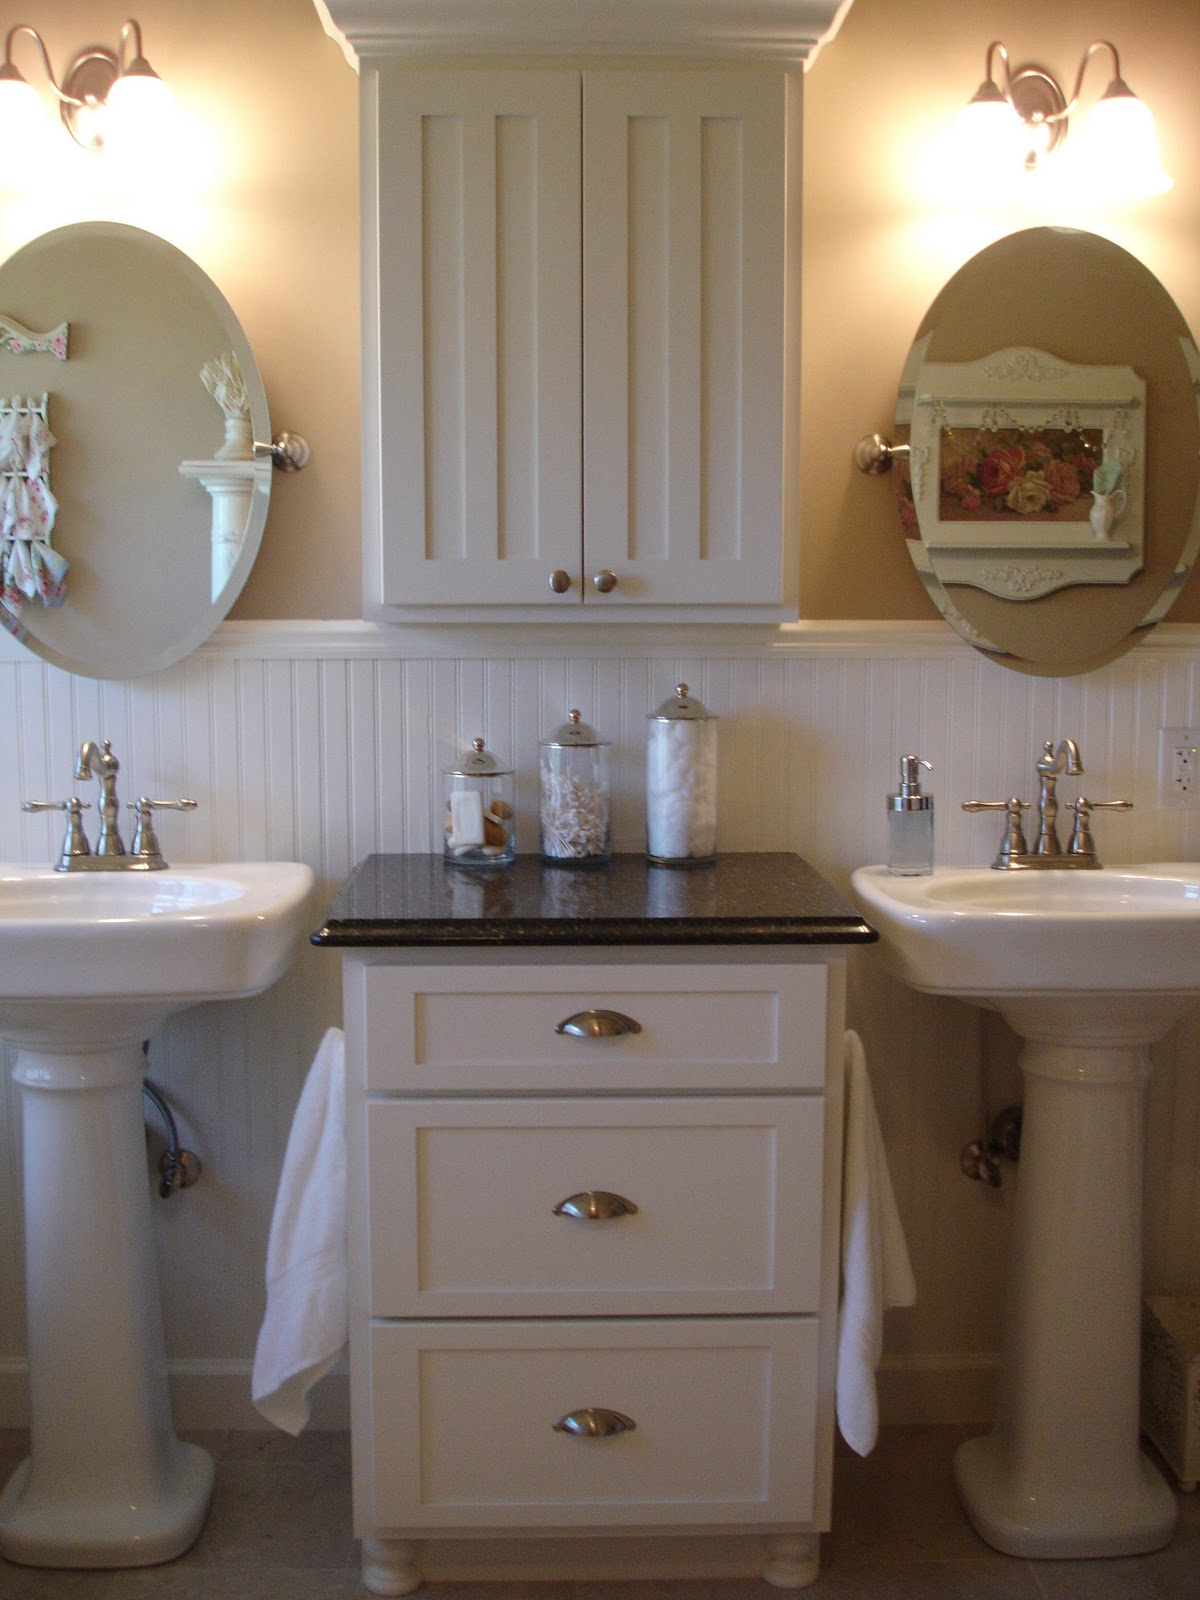 Pedestal Sink Bathroom Design Ideas : ... Pedestal Sink as well Bathroom Pedestal Sink Design Ideas furthermore